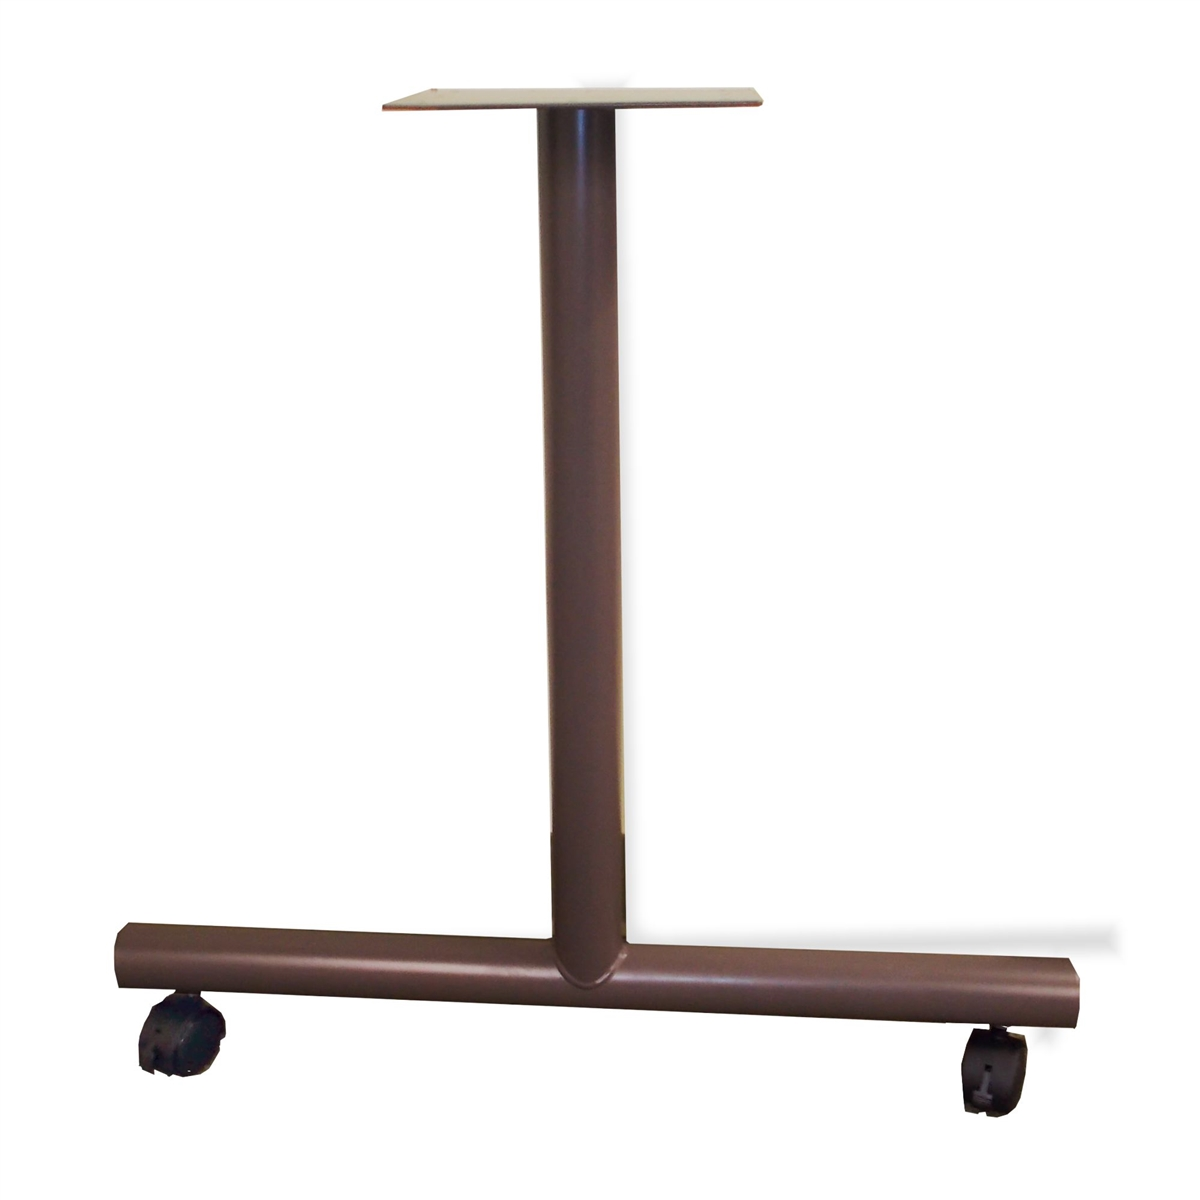 Metal TLeg Table Base With Locking Casters For Deep Worktops - T base table legs